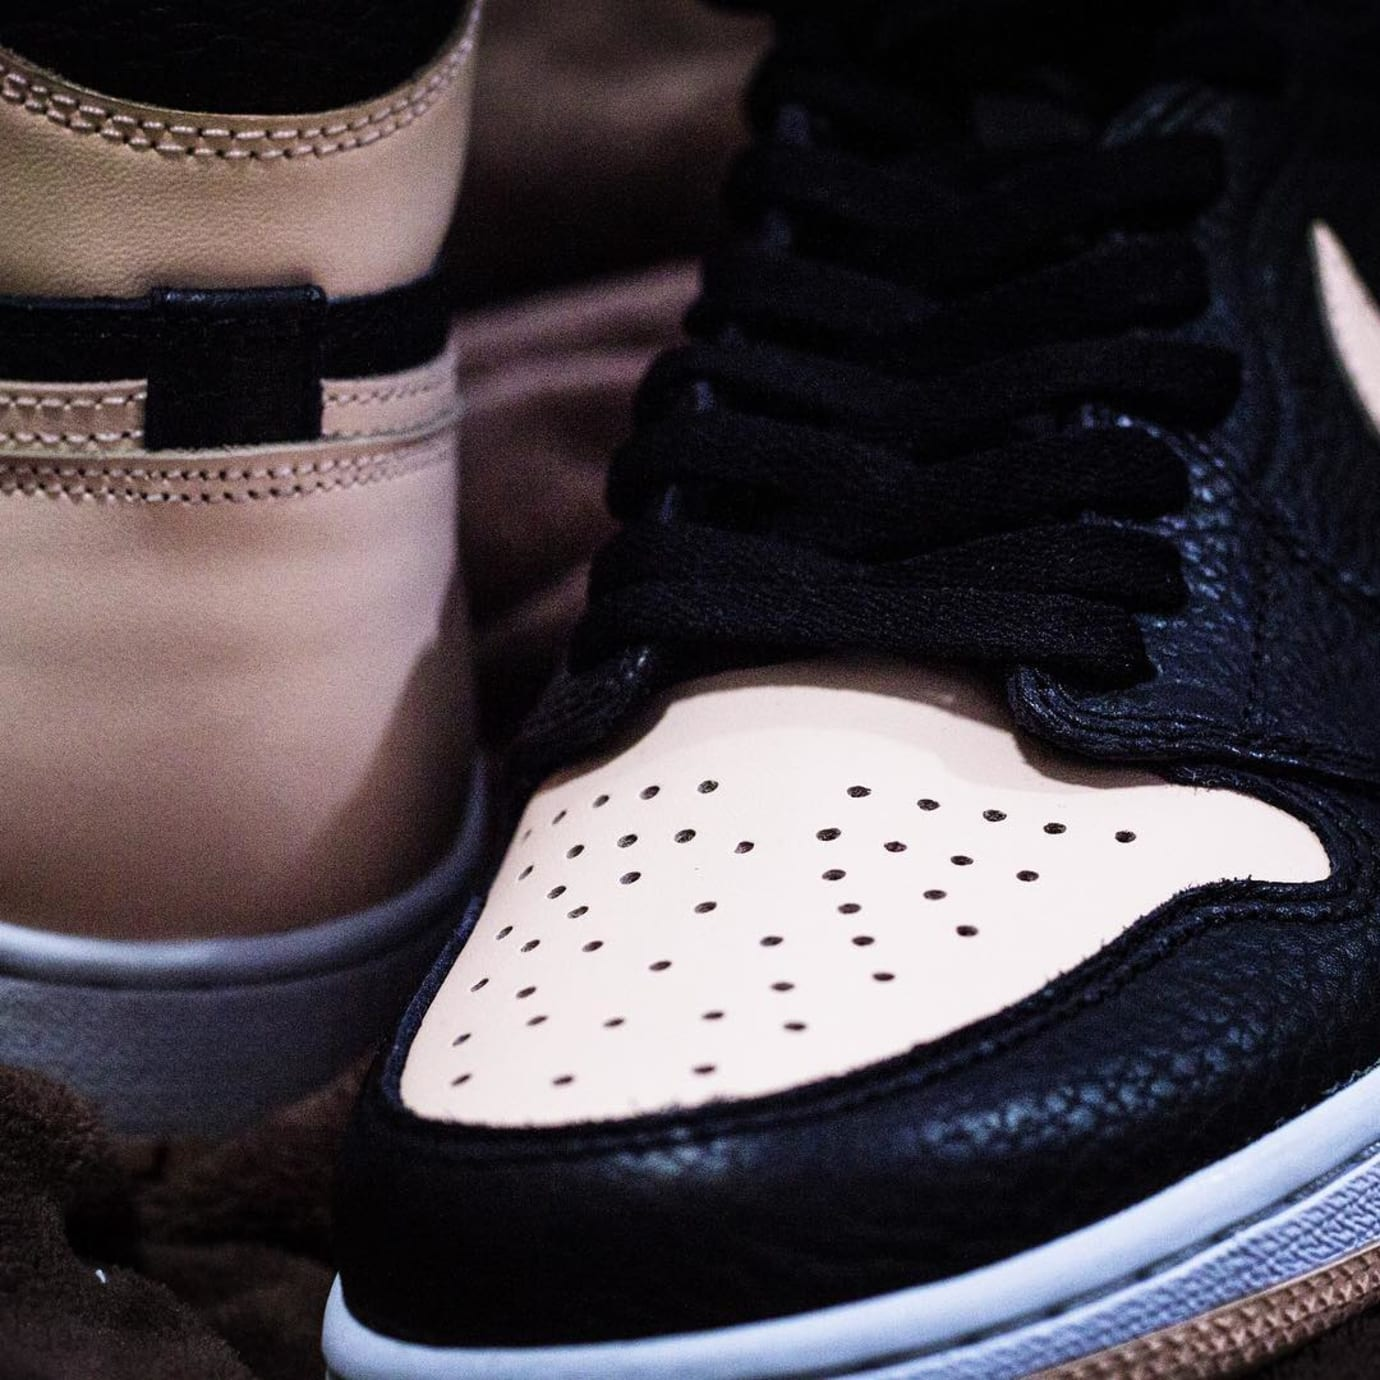 bf3ead3cccb4d Image via hanzuying · Air Jordan 1 Retro High OG  Crimson Tint  555088-081 8